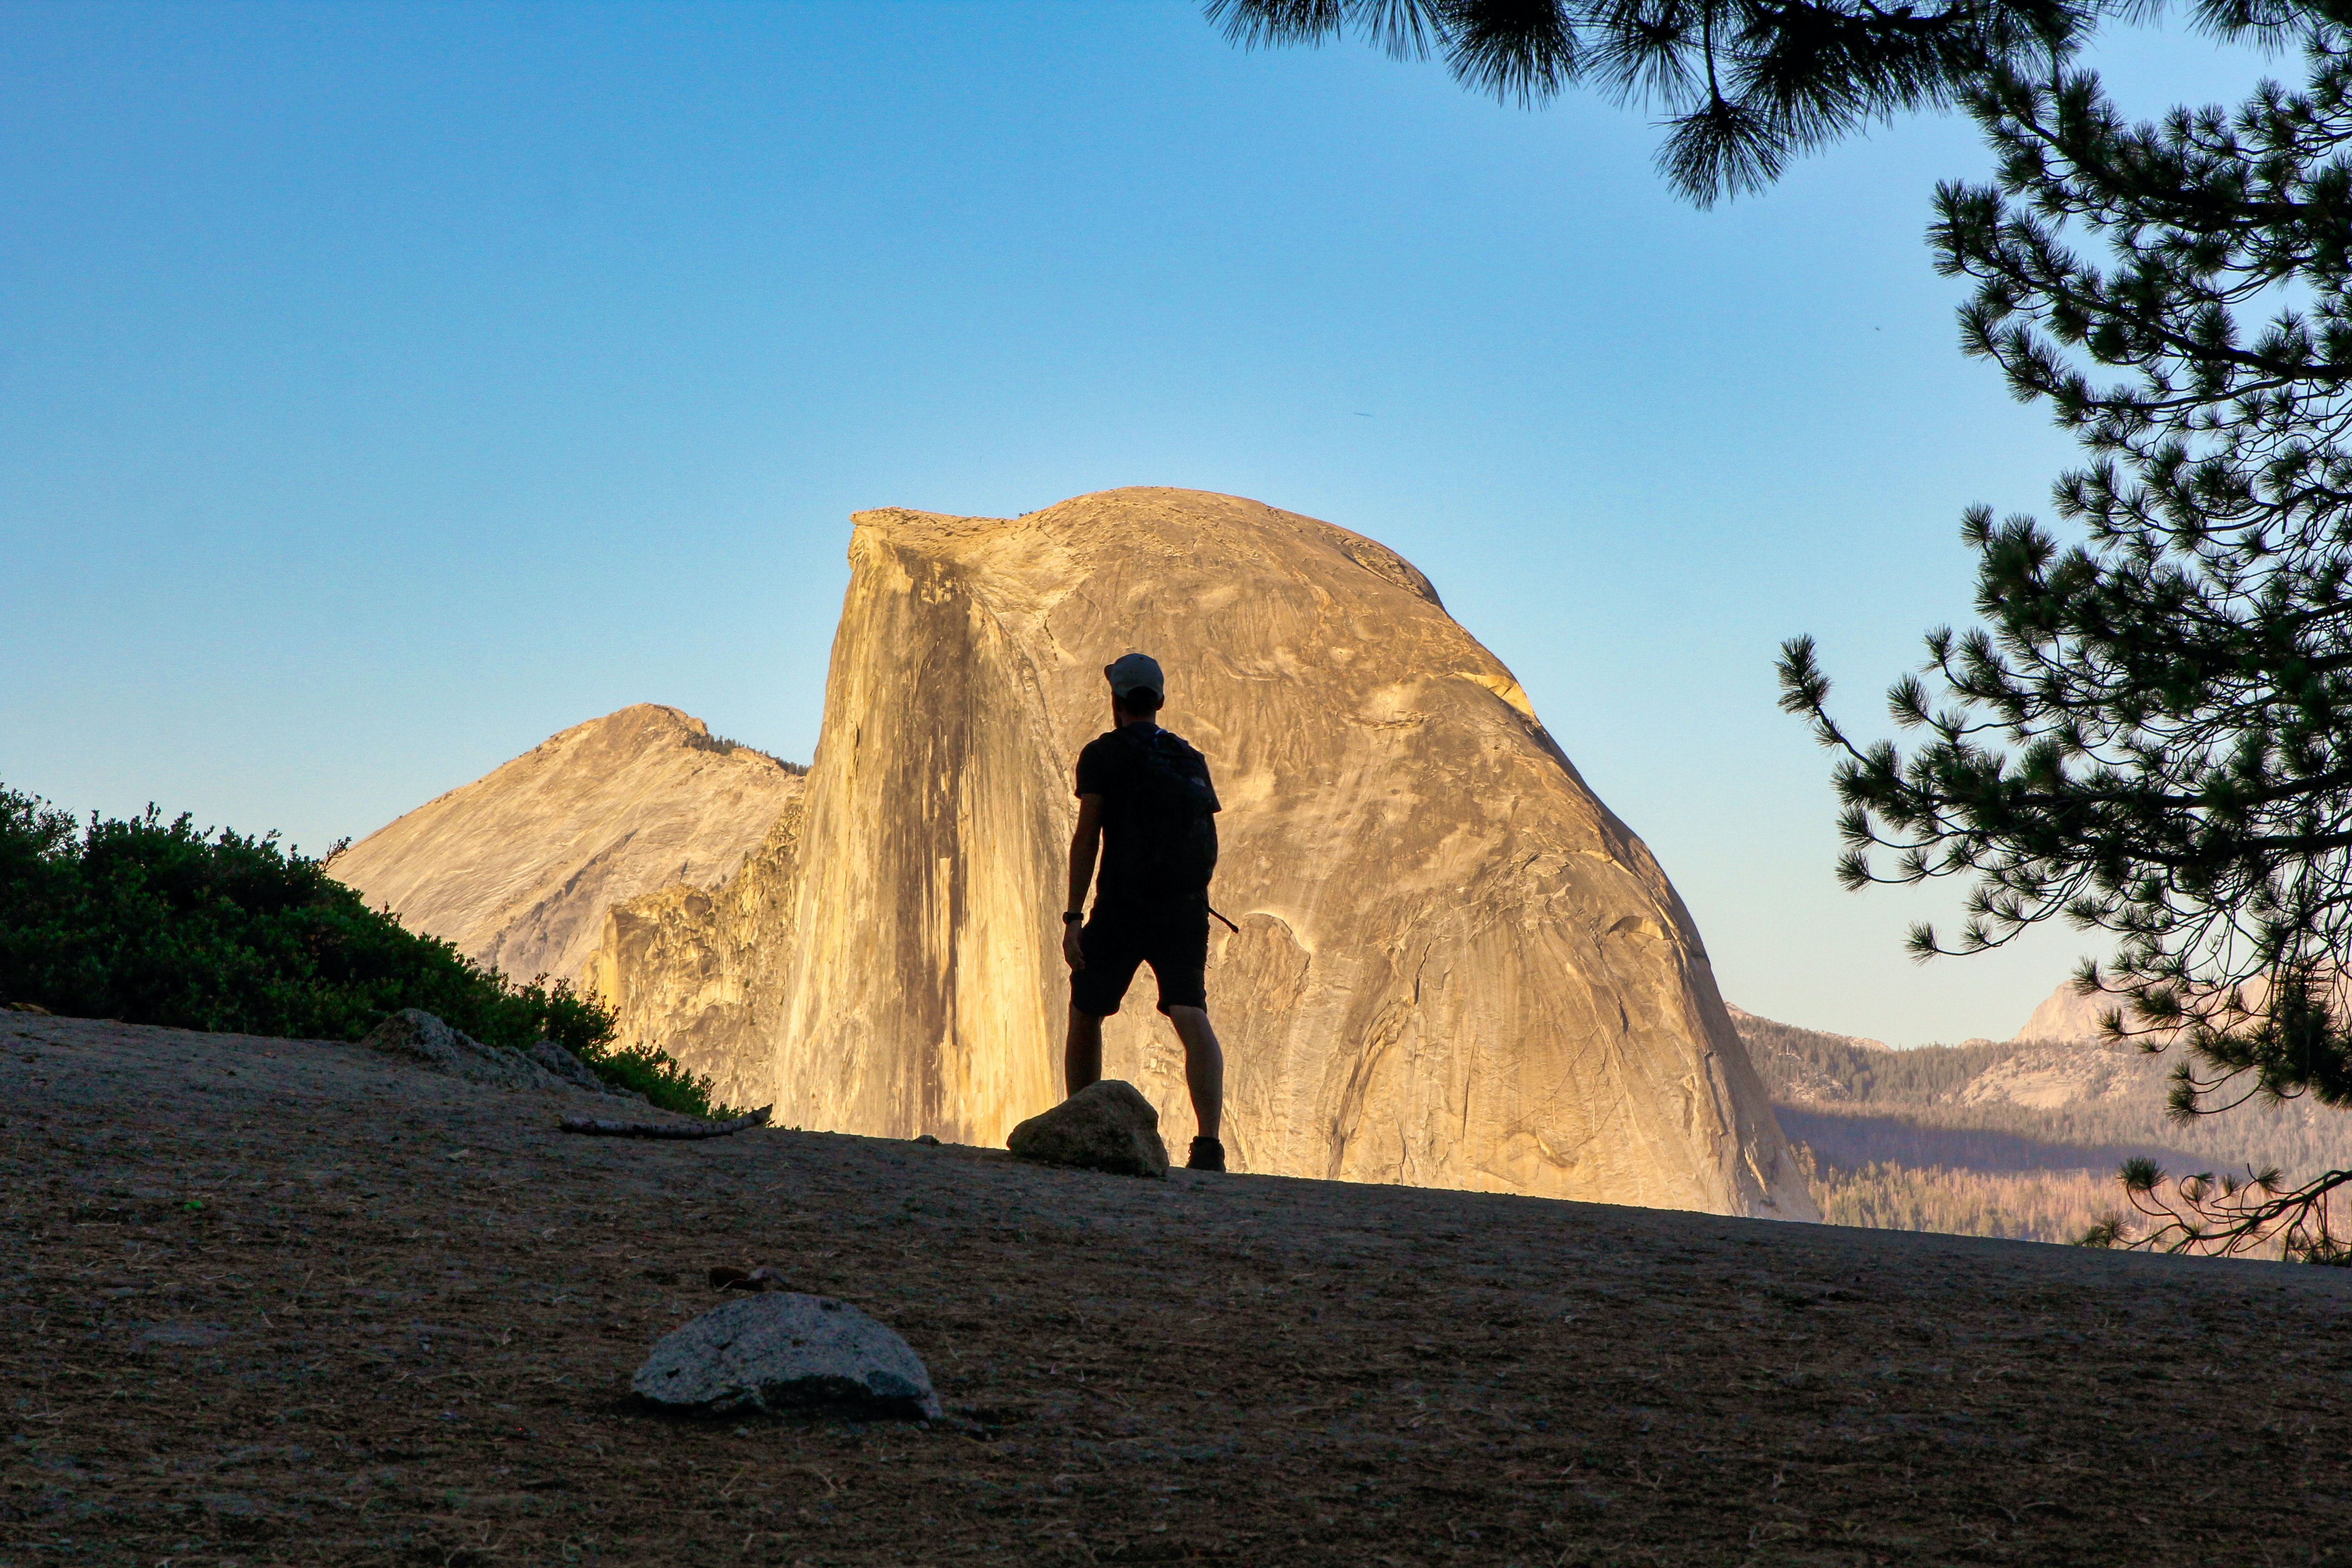 magnificent public lands in Northern California — a hiker surveys a magnificent dome-shaped peak.